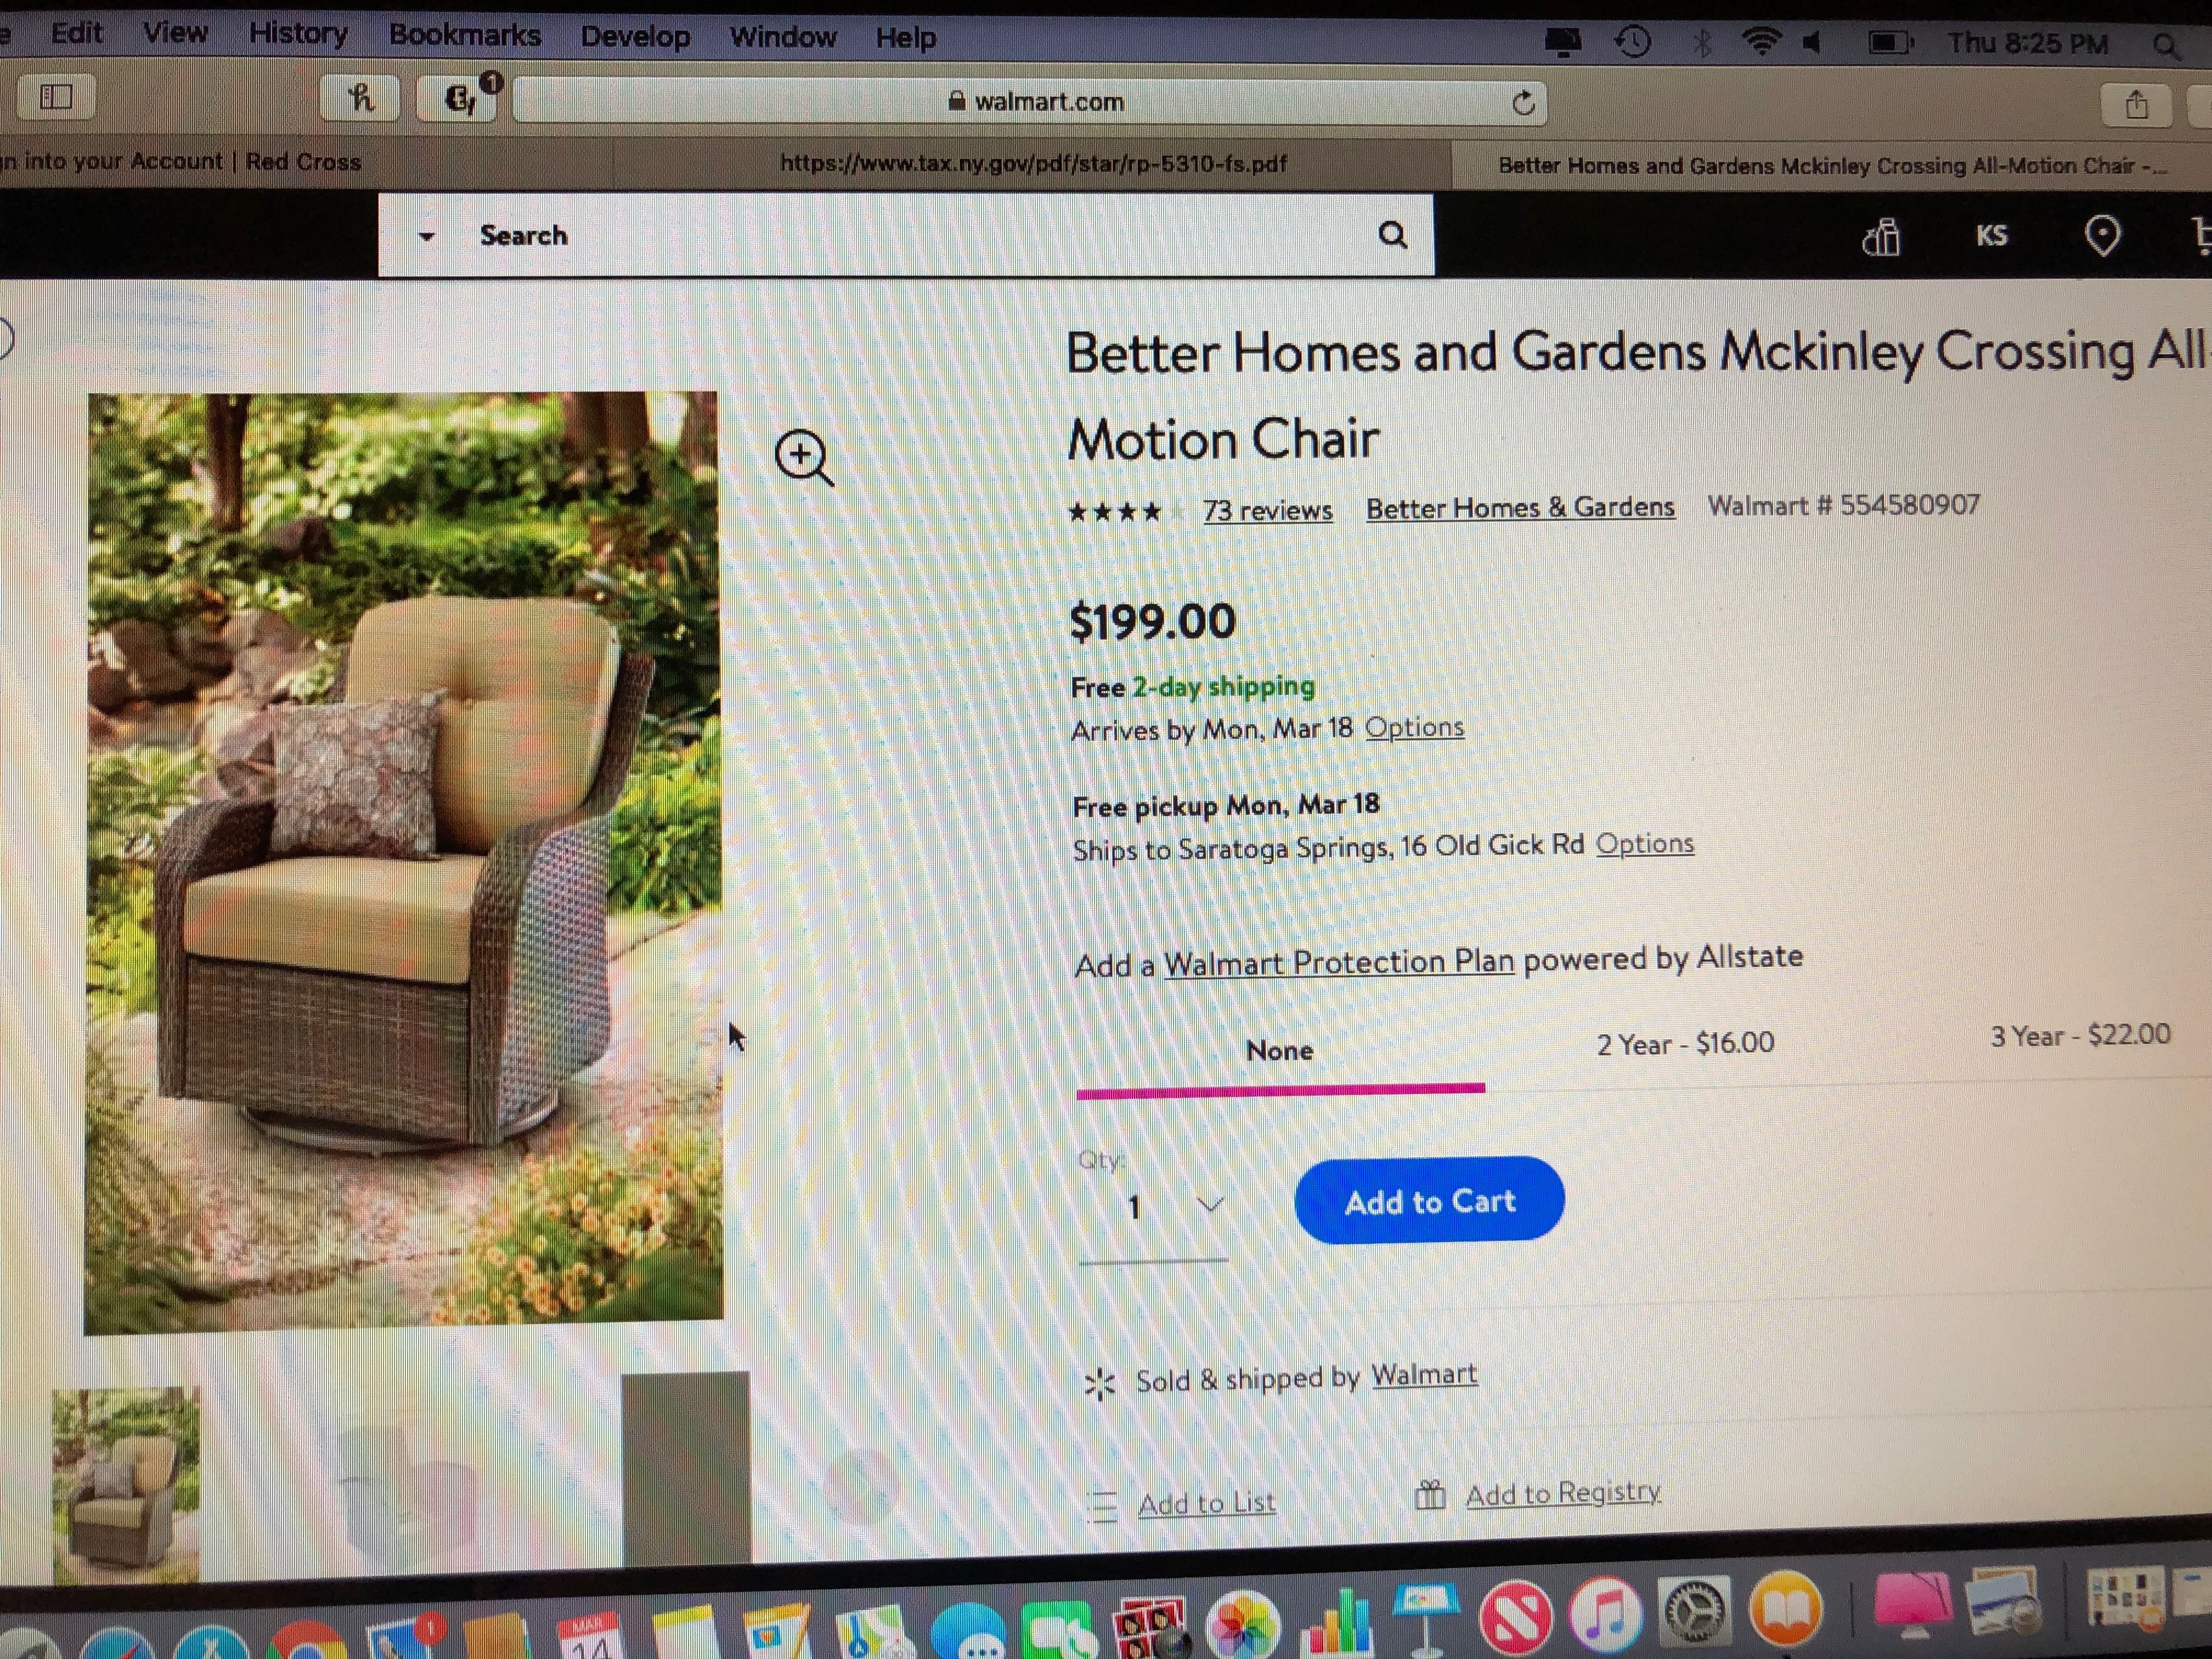 06bc330378457bd459304945366e8cbd - Better Homes And Gardens Mckinley Crossing All Motion Chair